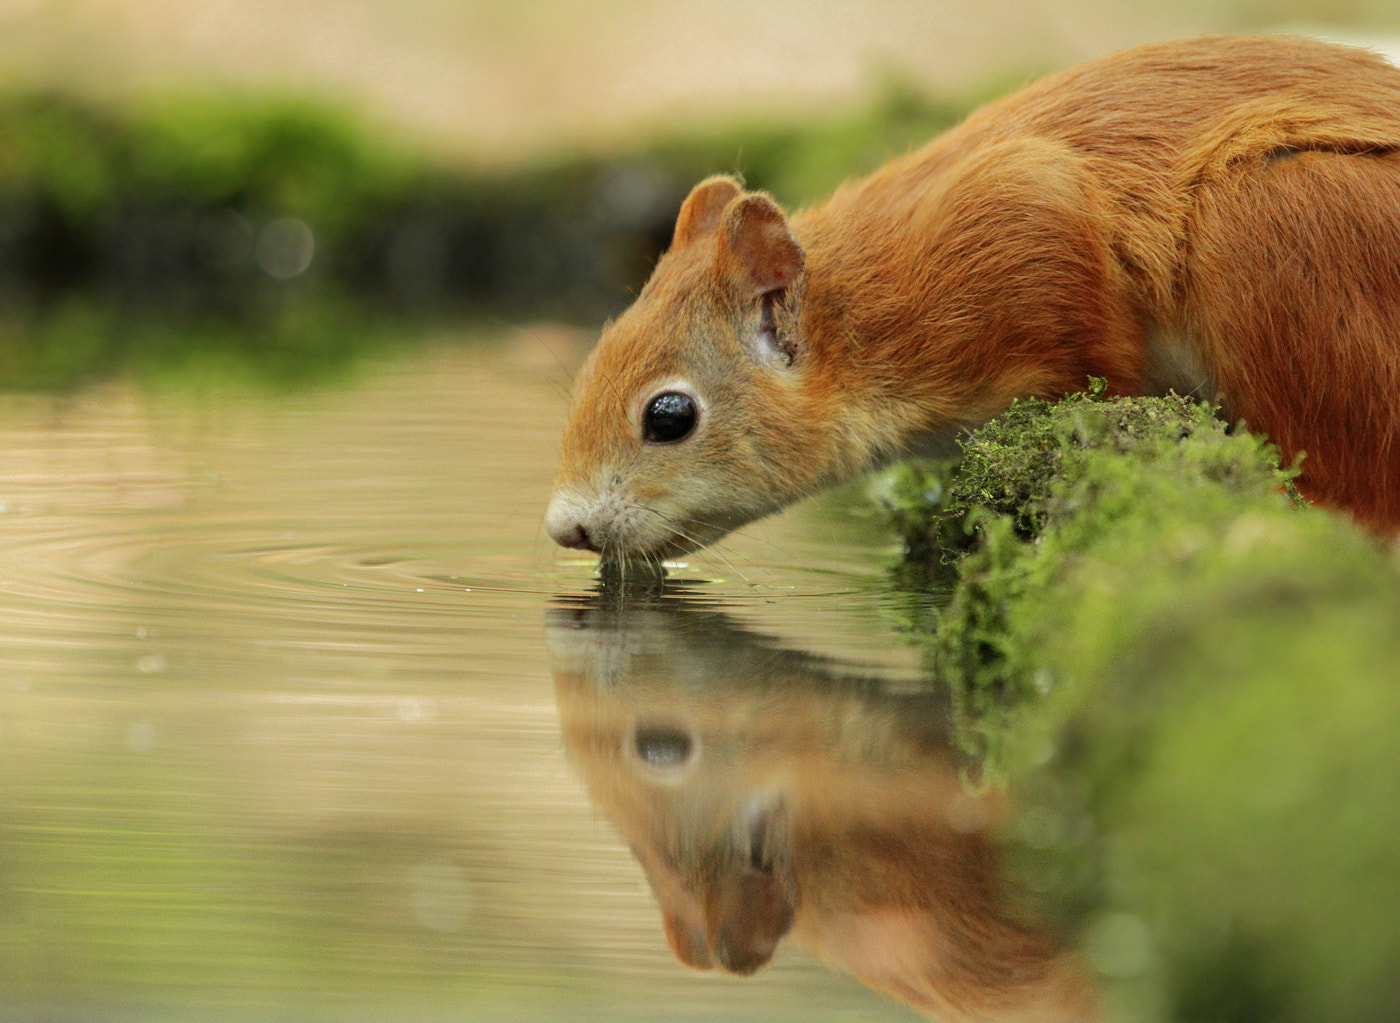 Photograph Thirsty Squirrel by Julian Ghahreman Rad on 500px